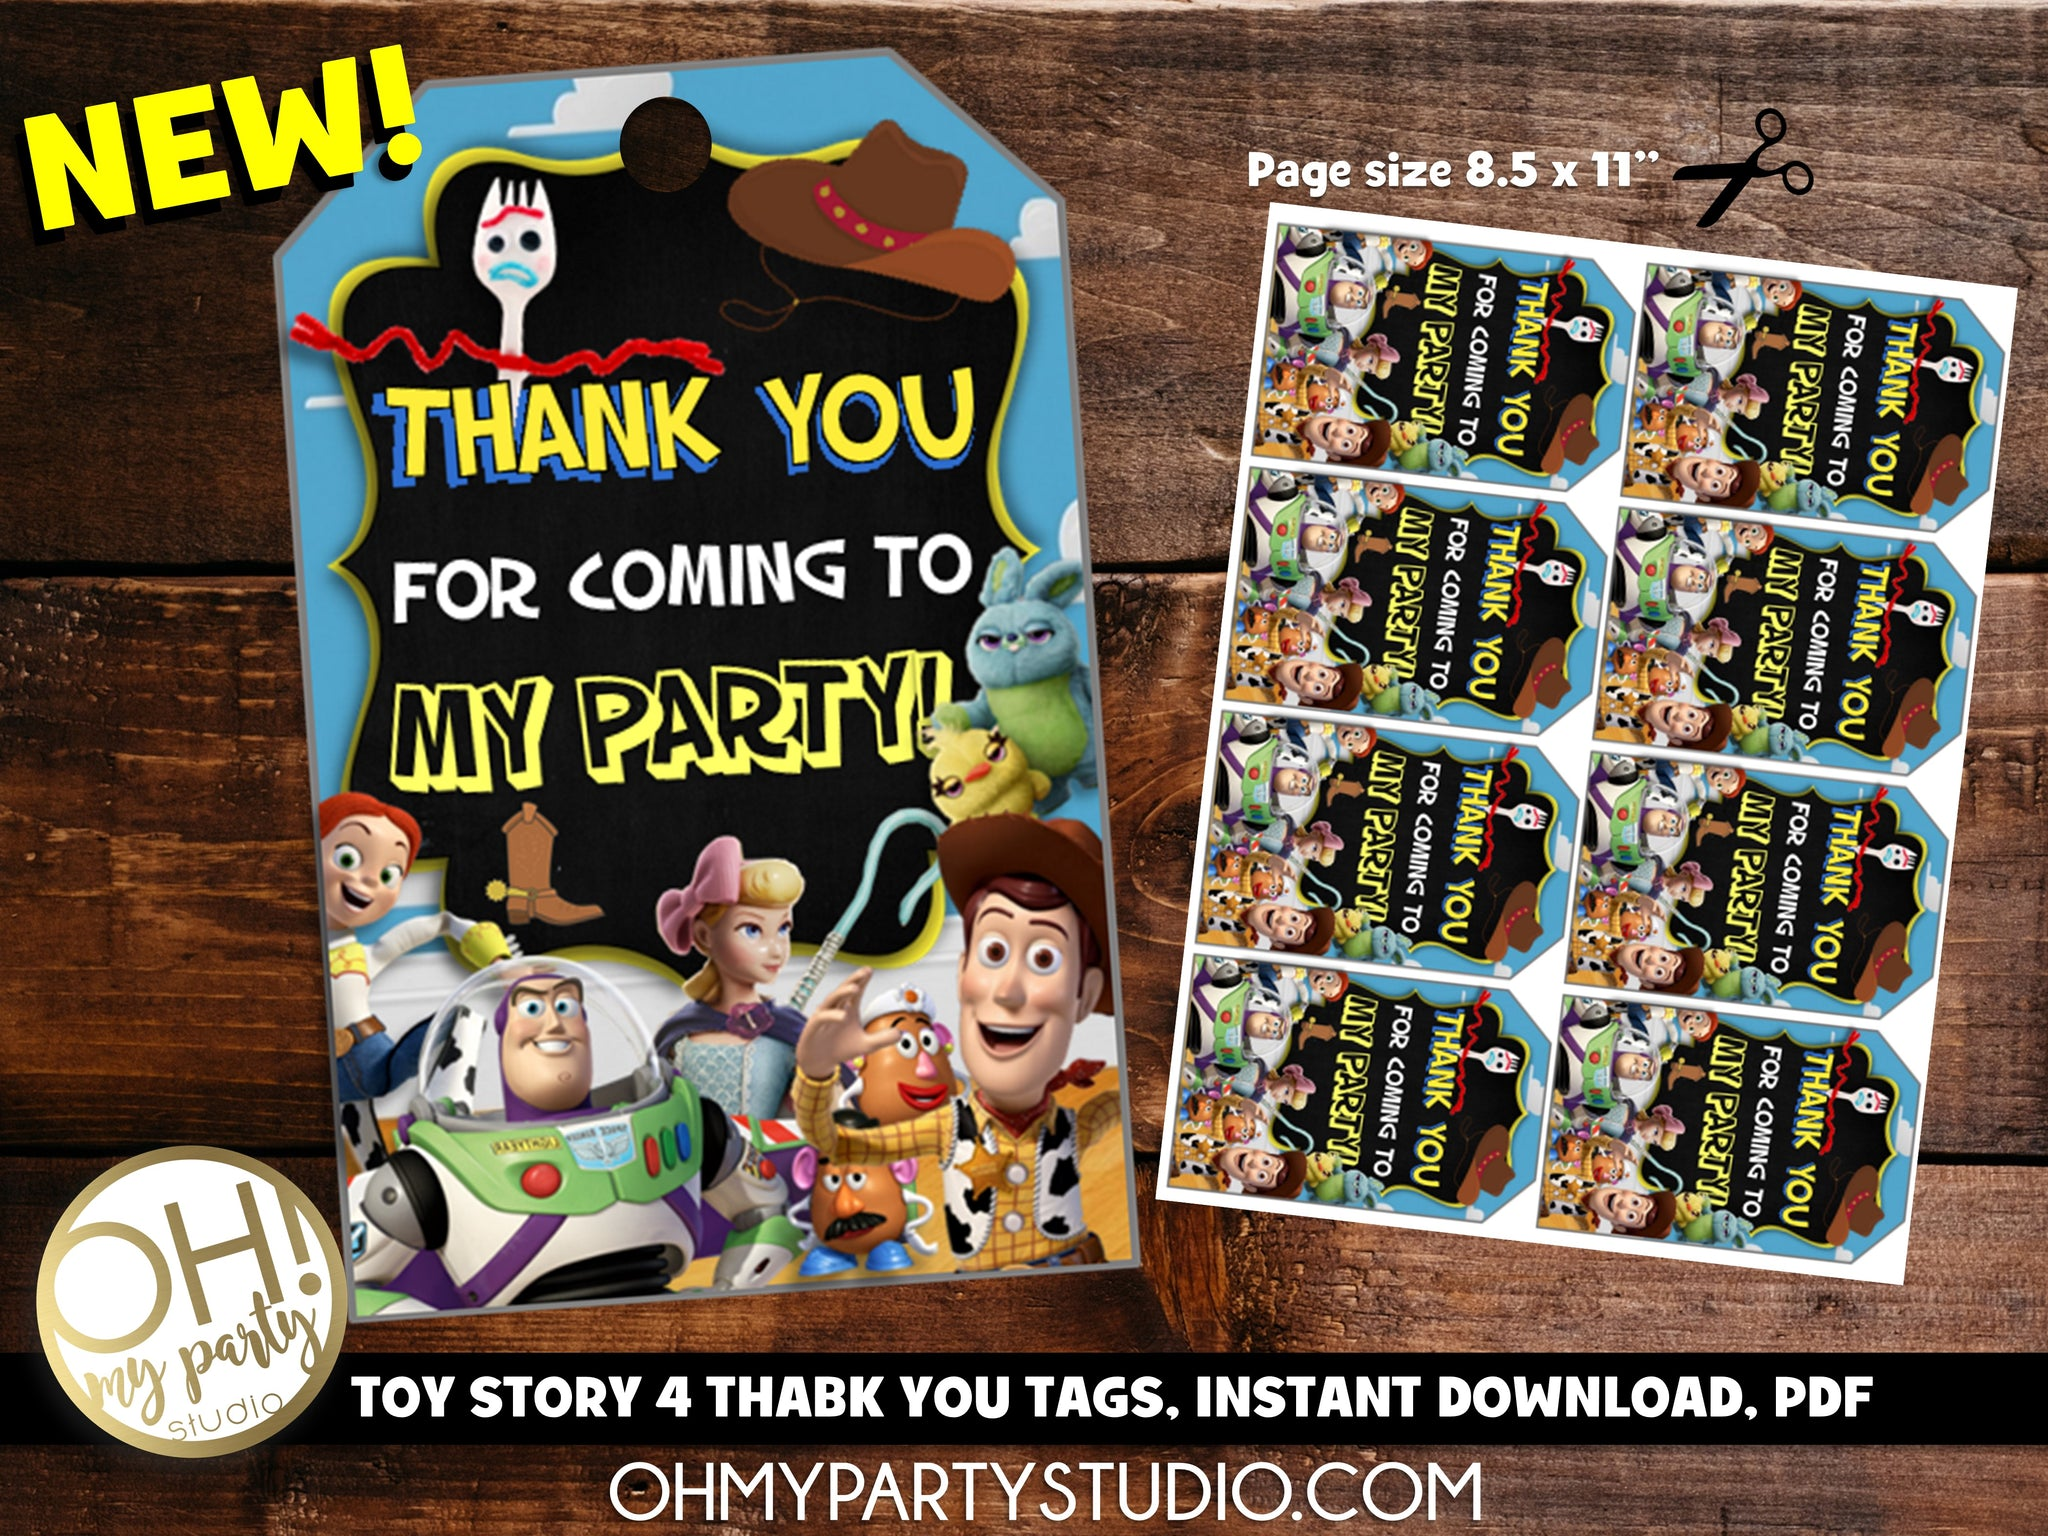 TOY STORY 4 KIT PRINTABLE, TOY STORY BIRTHDAY PARTY IDEAS, TOY STORY 4 PARTY, TOY STORY 4 BIRTHDAY, TOY STORY 4 DECORATIONS, TOY STORY PARTY IDEAS, TOY STORY BANNER, TOY STORY THANK YOU TAGS, TOY STORY 4 , TOY STORY 4 PARTY PRINTABLES